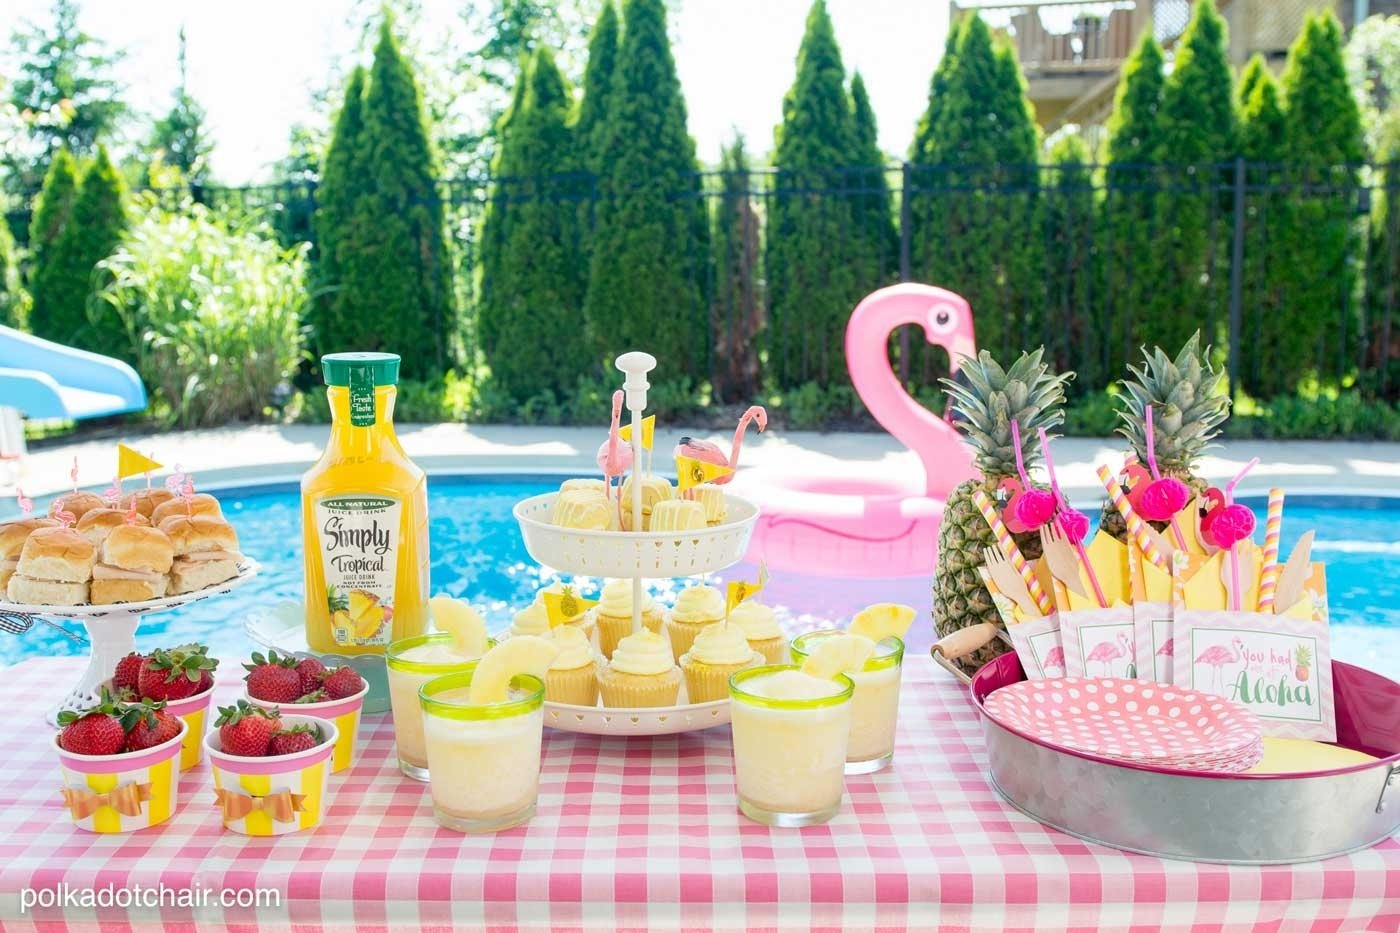 10 Stunning Pool Party Ideas For Adults summer backyard flamingo pool party ideas the polka dot chair 3 2020